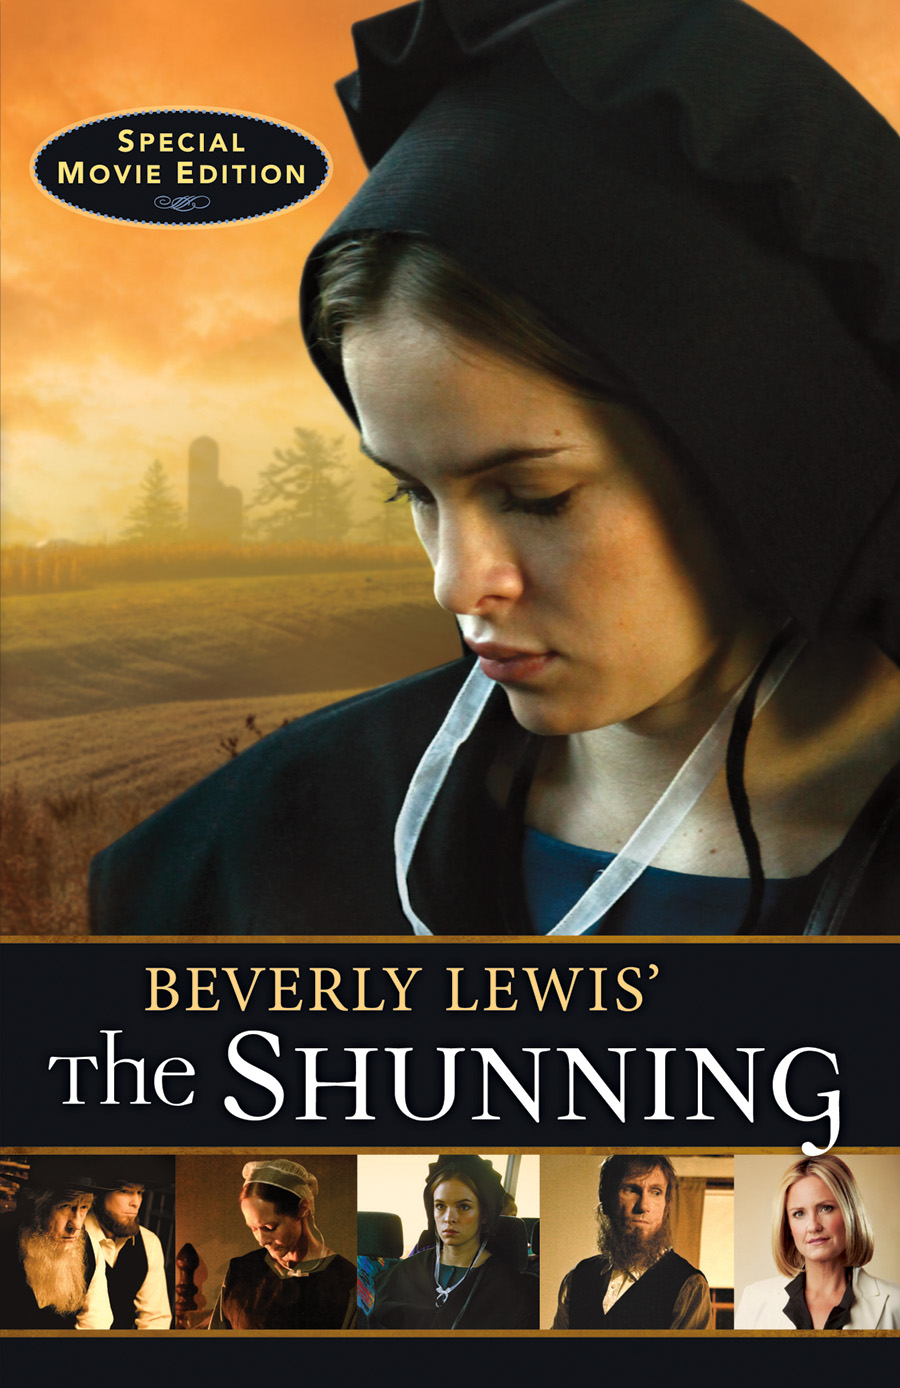 Beverly Lewis The Shunning Movie Edition Baker